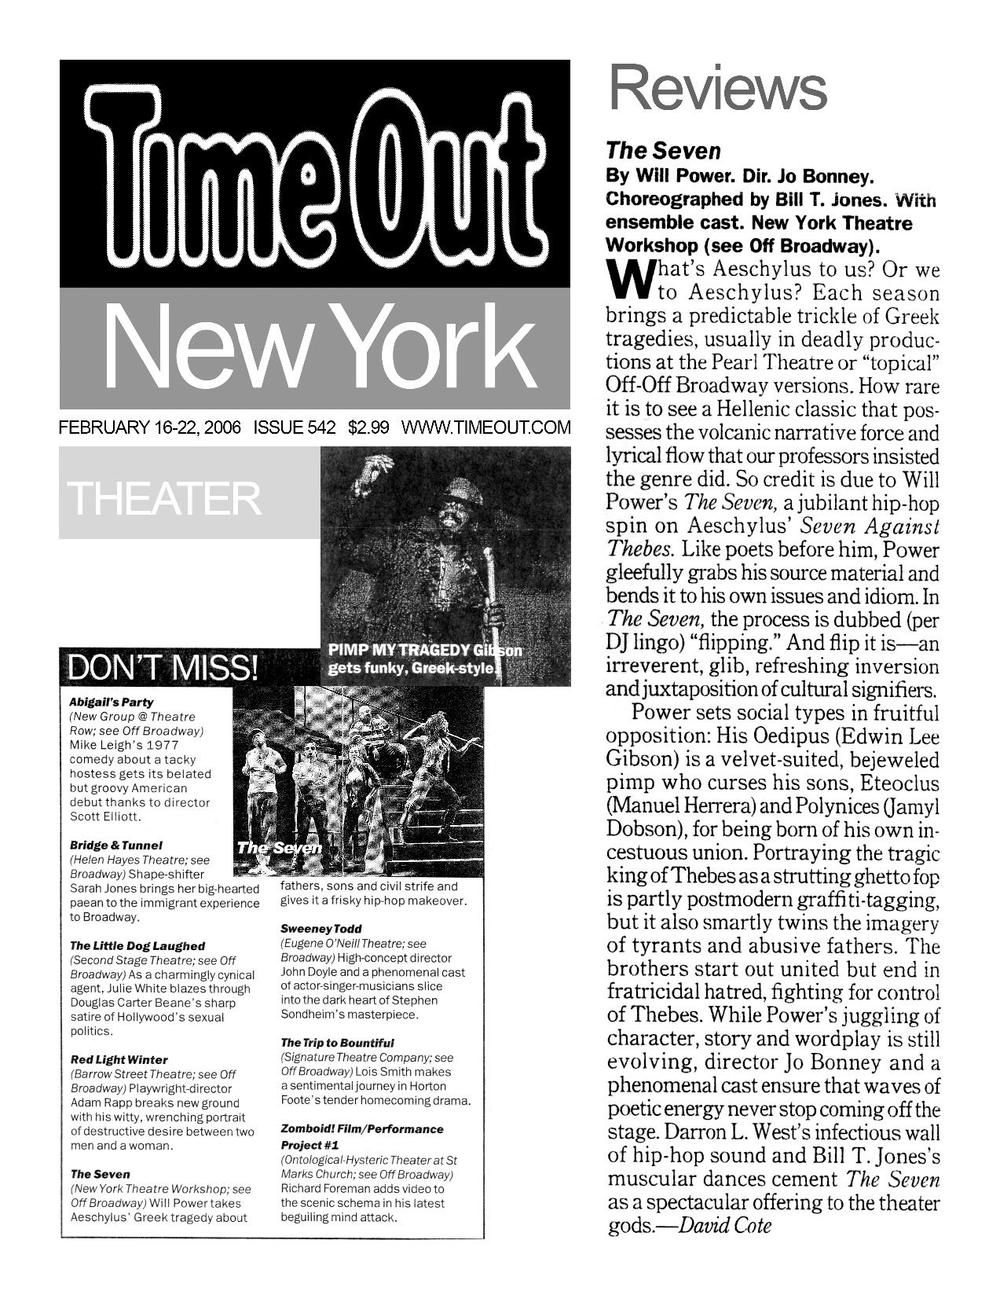 """Review of """"The Seven"""" from Time Out New York, 2/16/2006"""